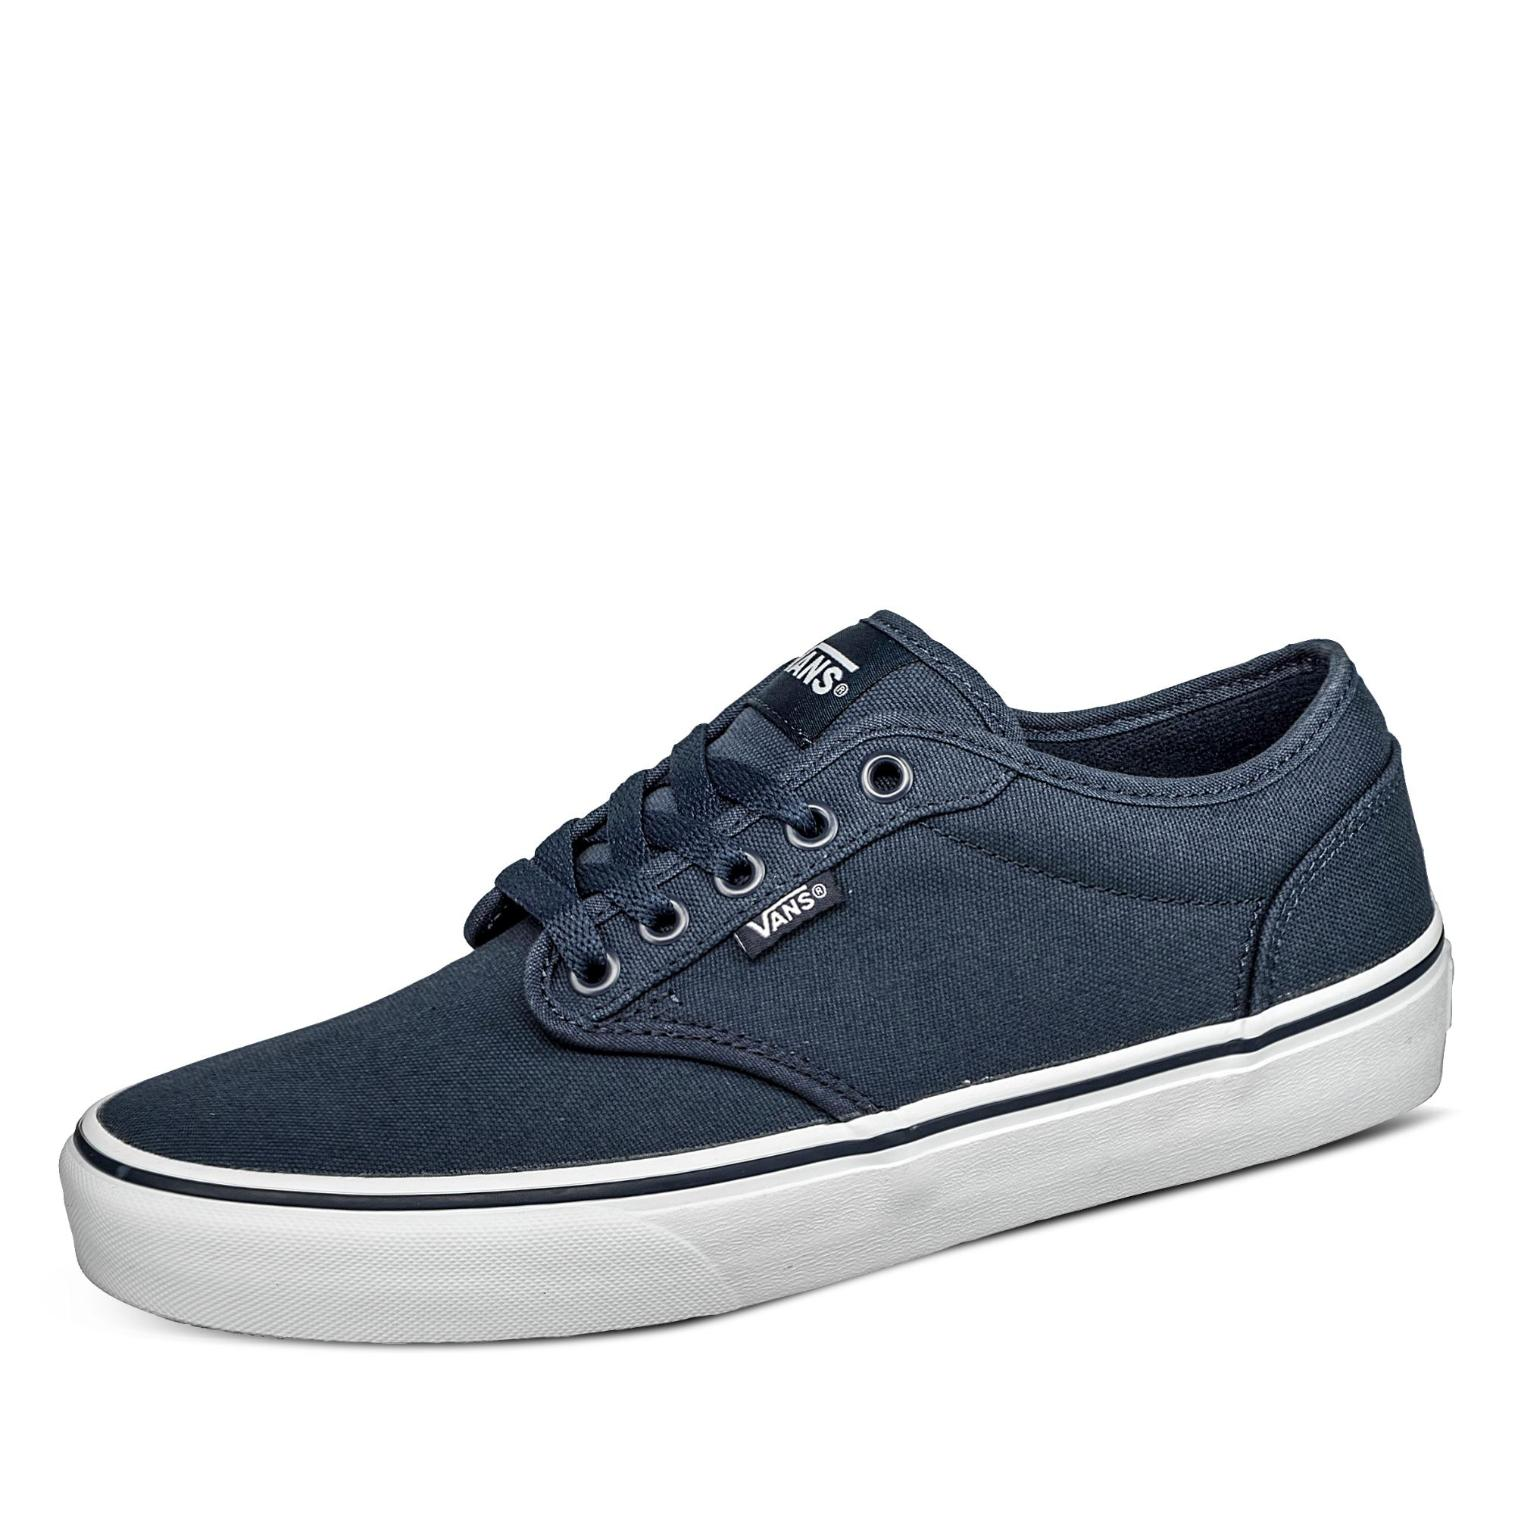 herren vans sneaker schuhe online bestellen auf rechnung. Black Bedroom Furniture Sets. Home Design Ideas